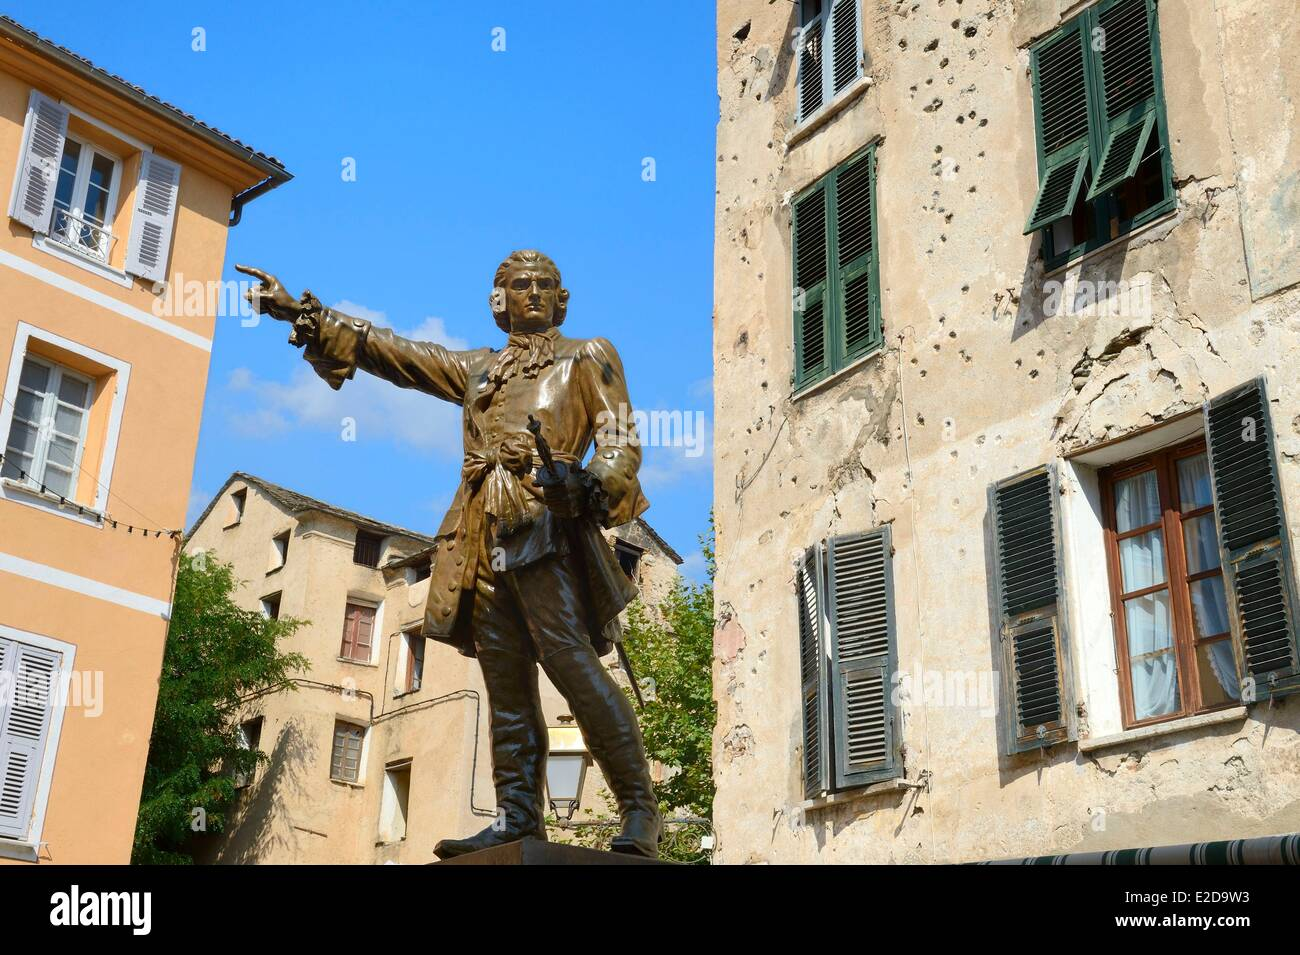 France, Haute Corse, Corte, the statue of a hero of the corsican revolution general Gaffori in front of his birthplace - Stock Image